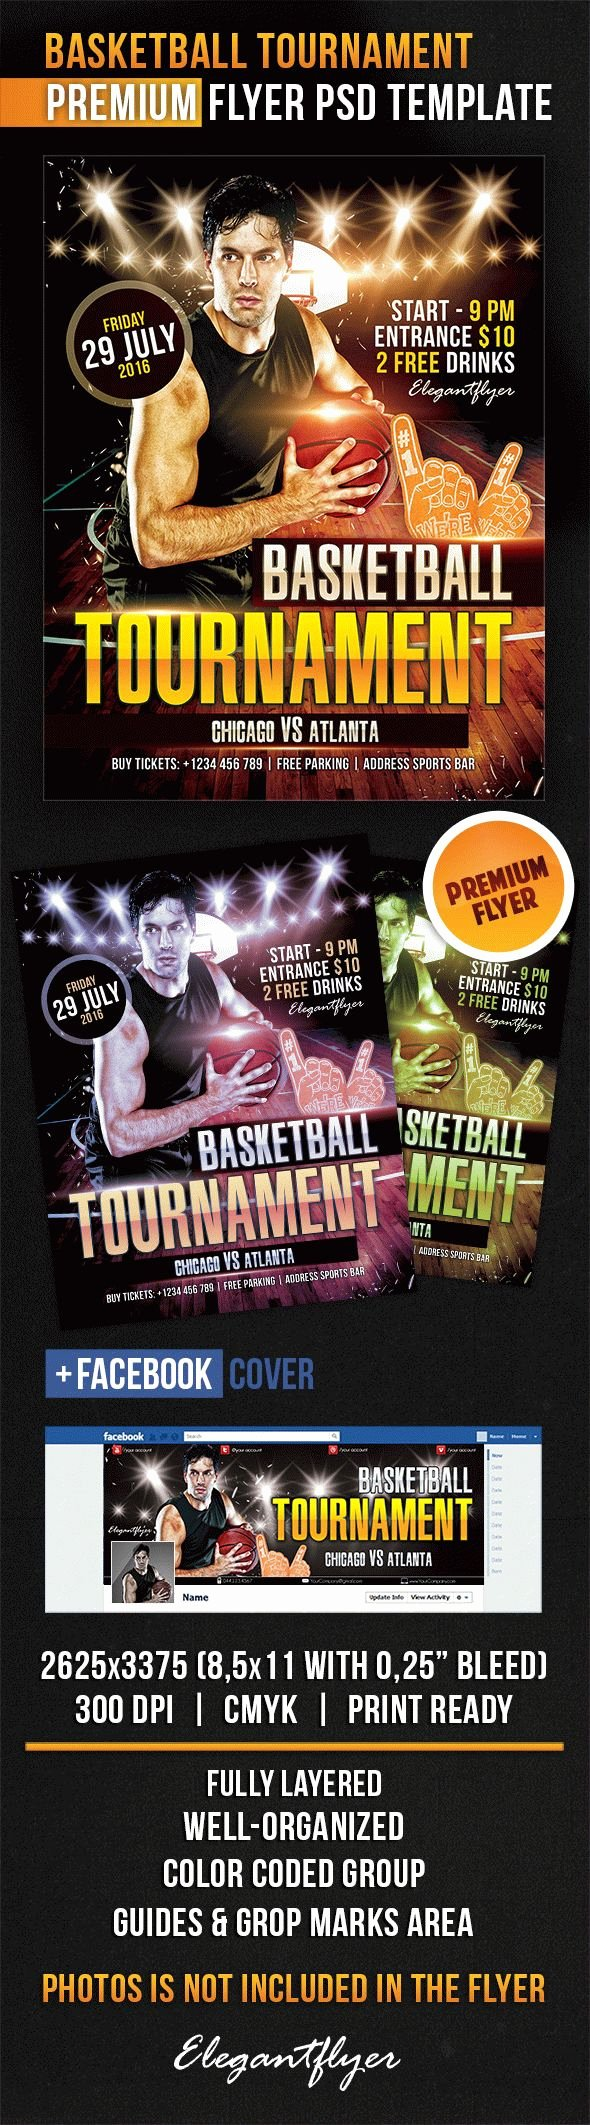 Basketball tournament Flyer Template Unique Basketball tournament – Flyer Psd Template – by Elegantflyer